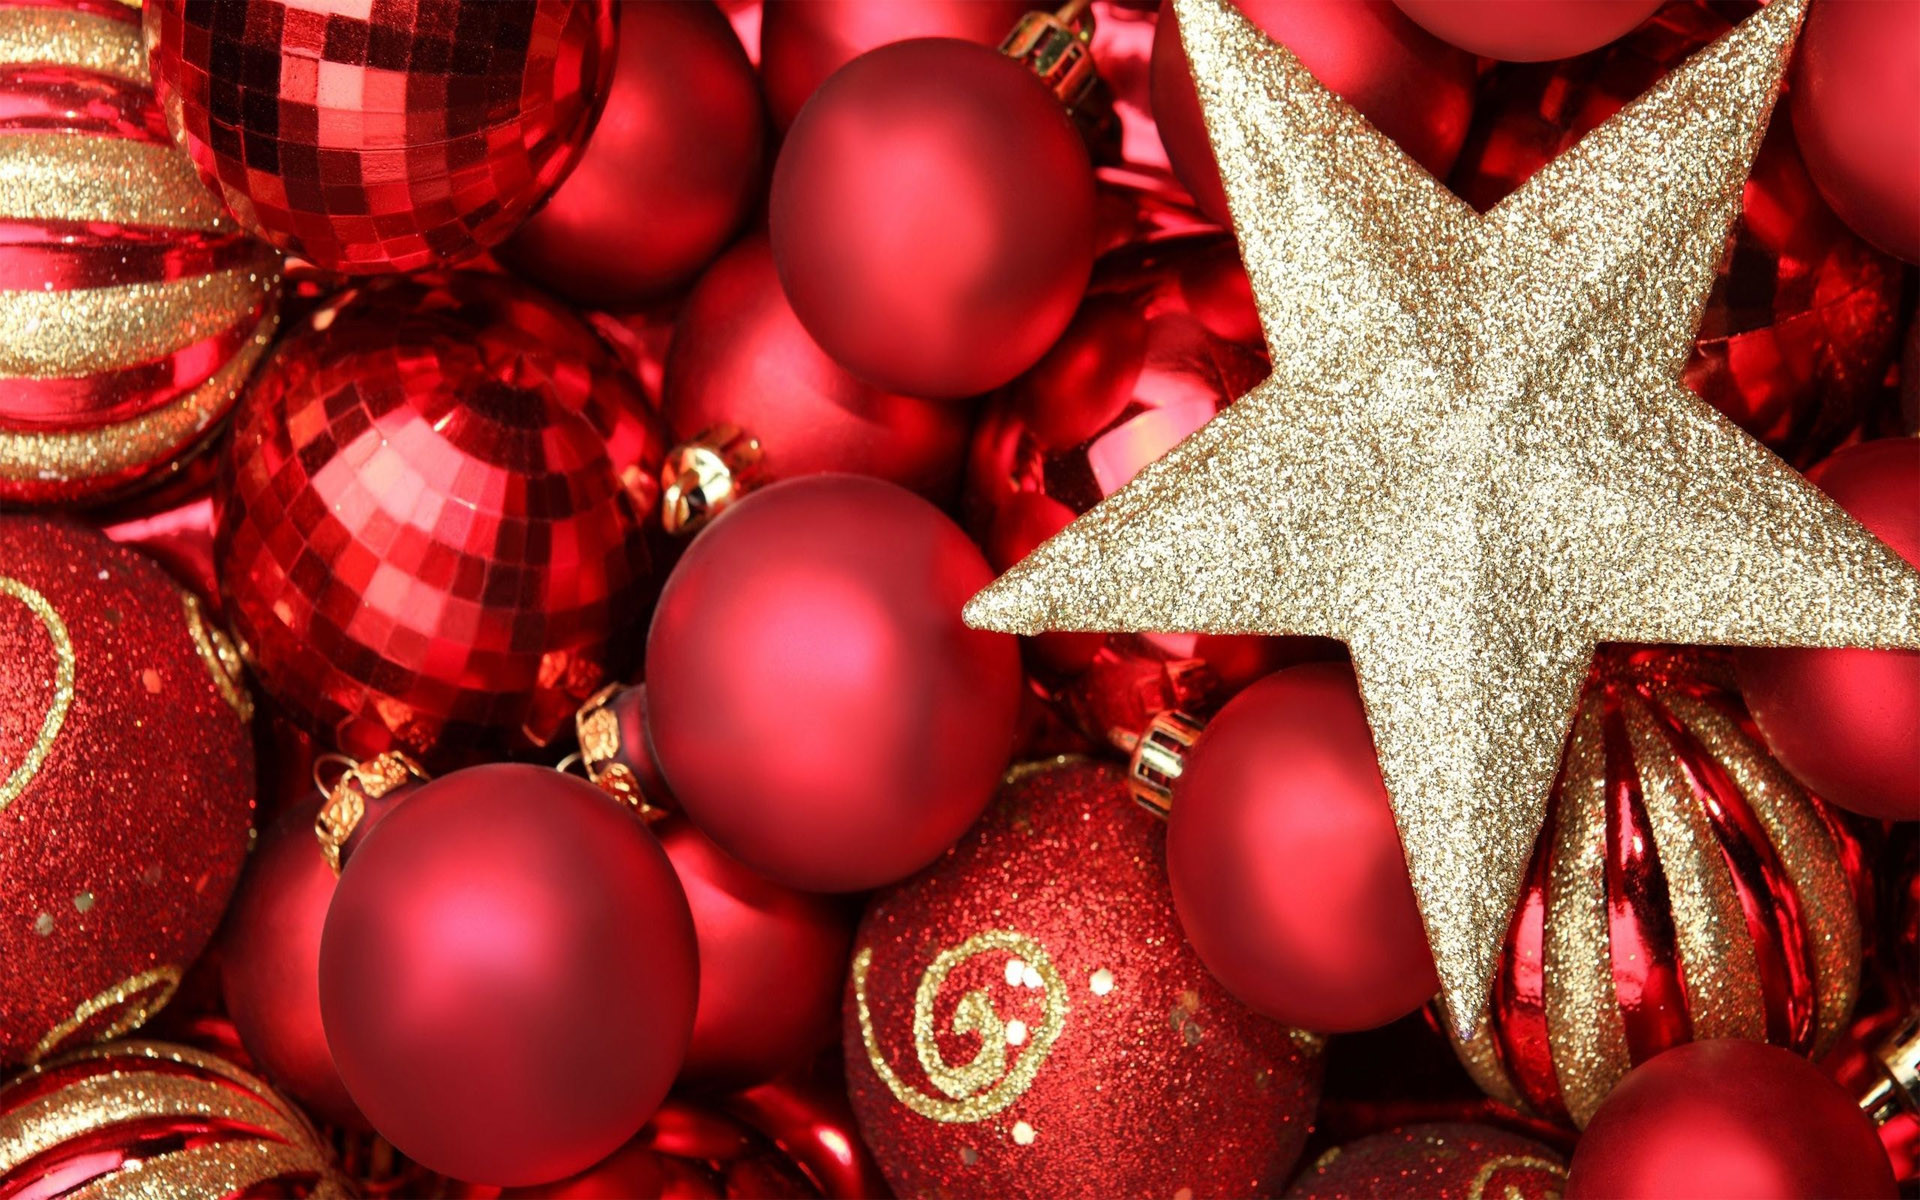 Red & gold Christmas ornaments HD wallpaper